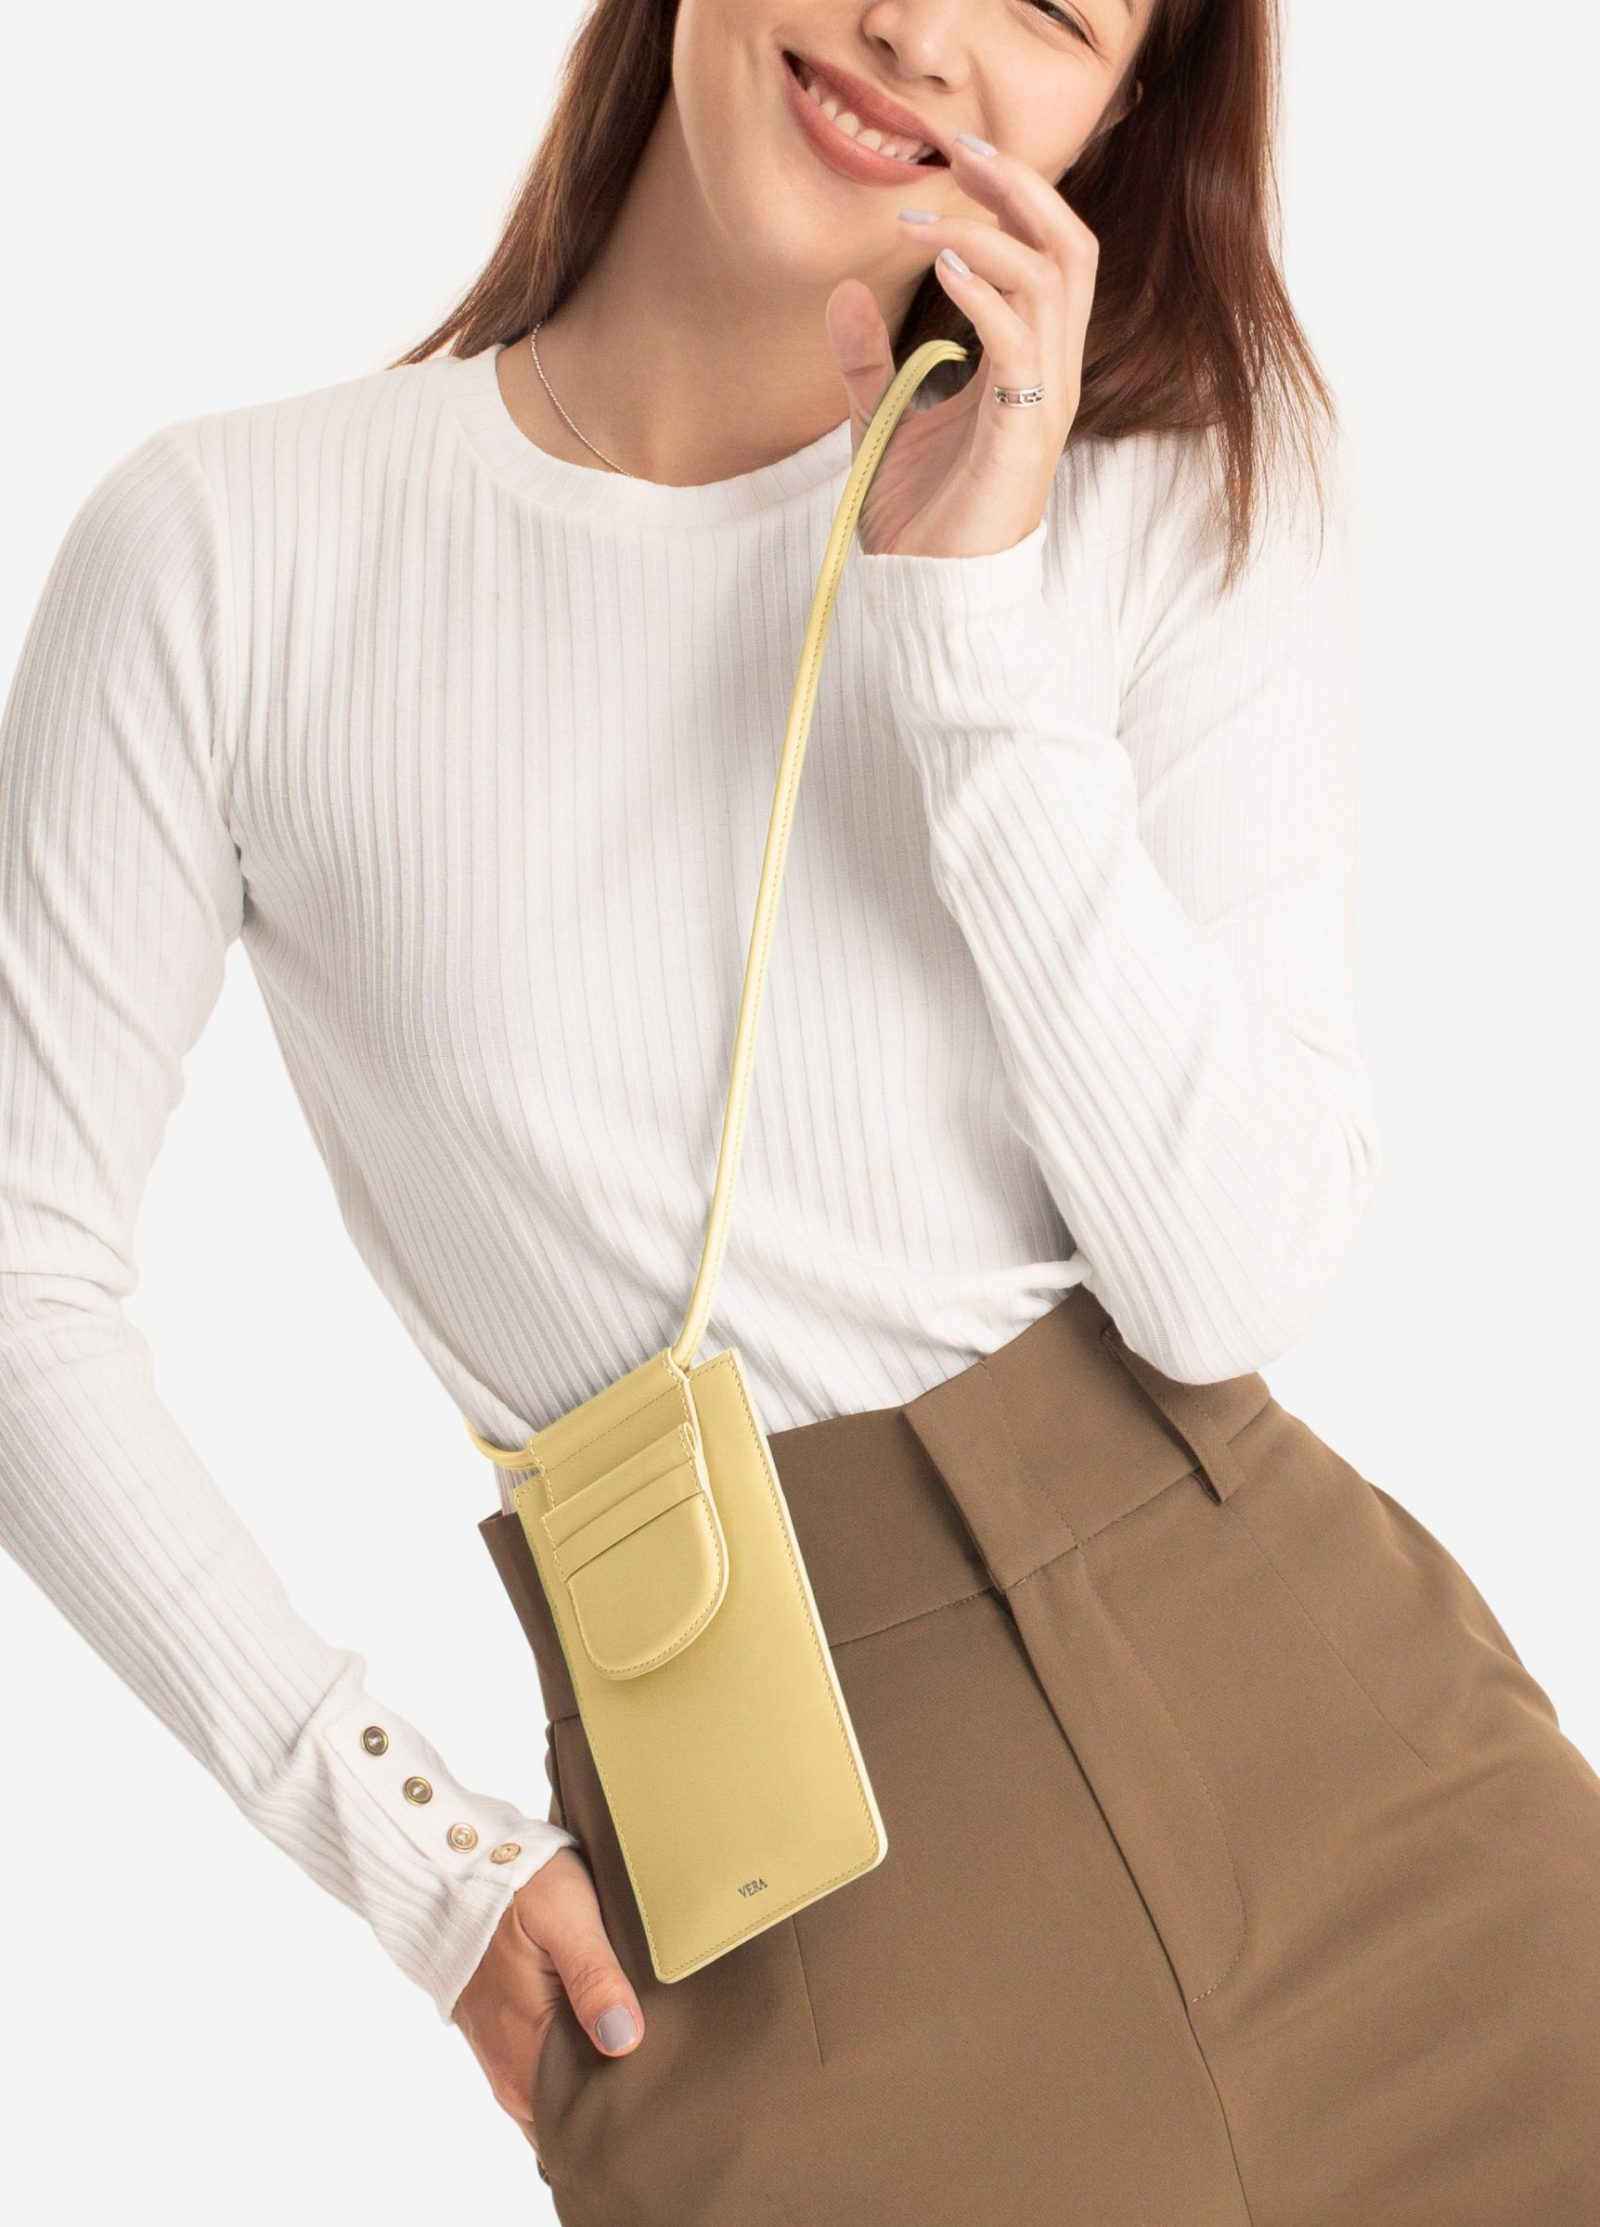 กระเป๋า NEW! VERA BEST MILLIE POUCH IN LEMON